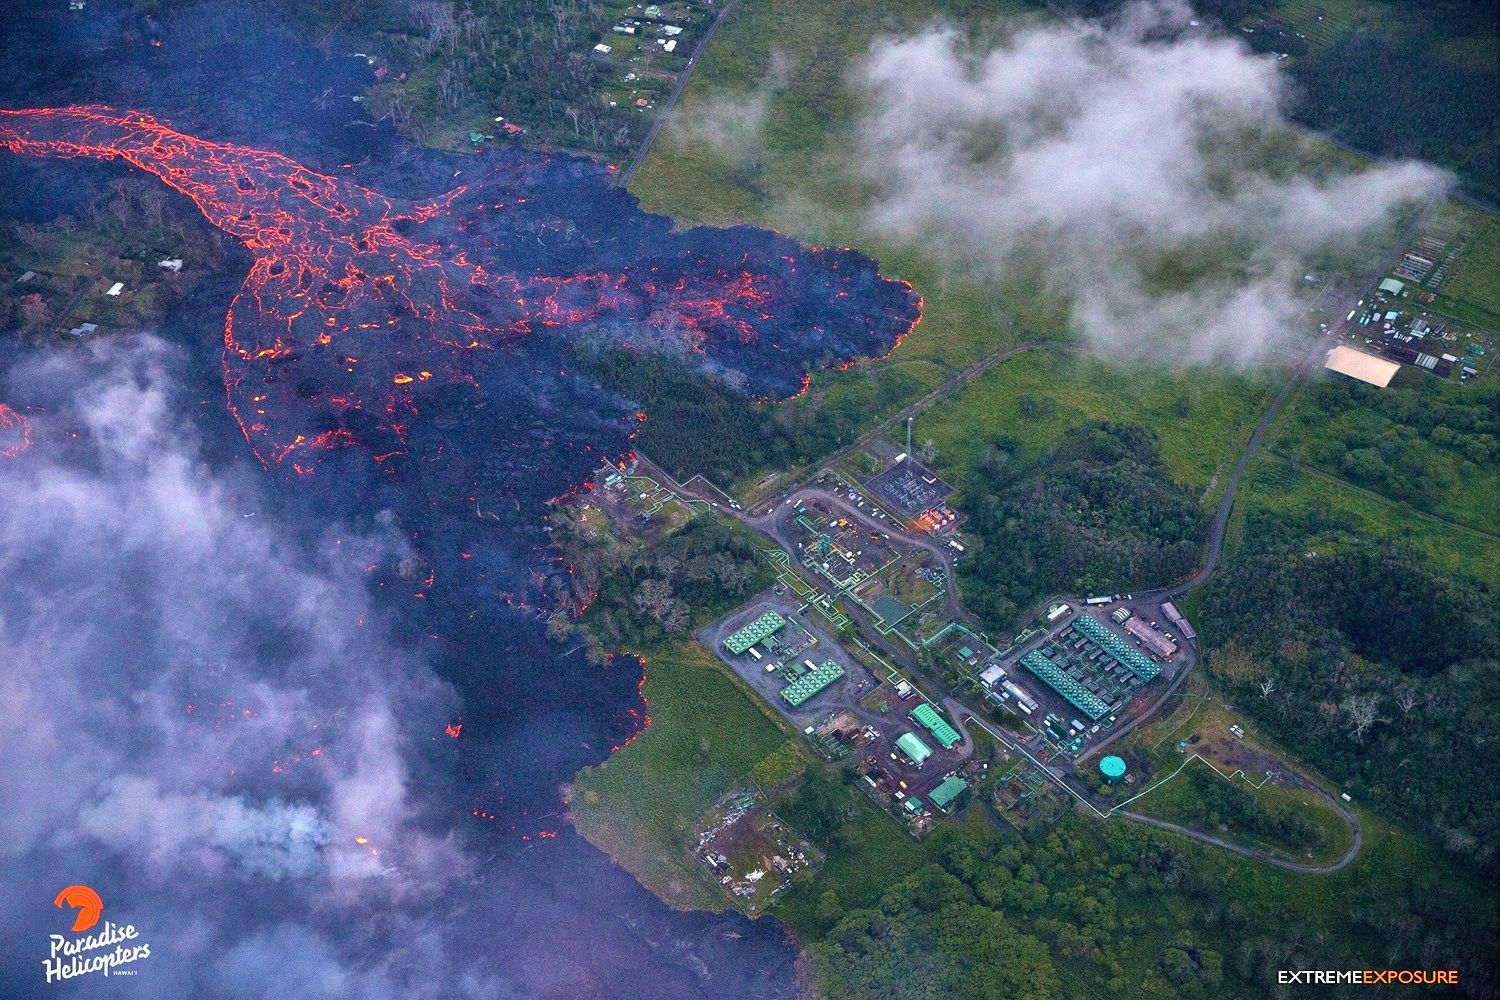 Kilauea East rift zone - 27.05.2018 / 5h 45 pm - lava penetrates the GVP field - photo Bruce Omori / Paradise Helicopters